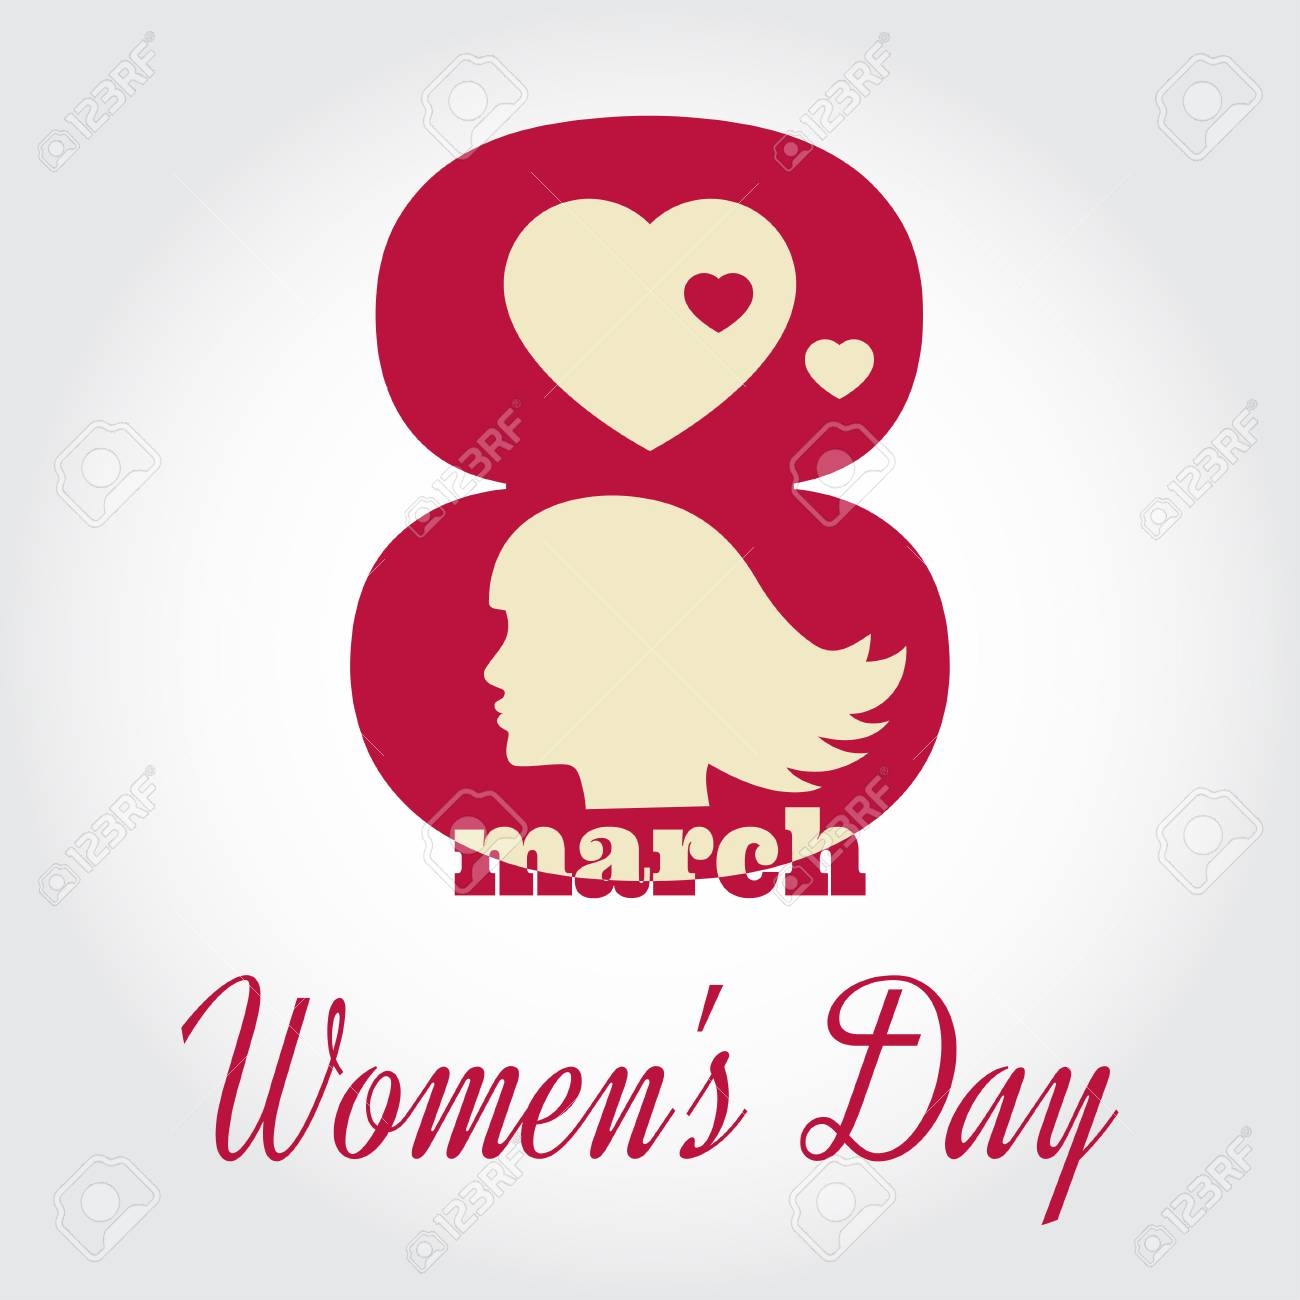 Womens day drawing womens day image womens day graphic womens day art